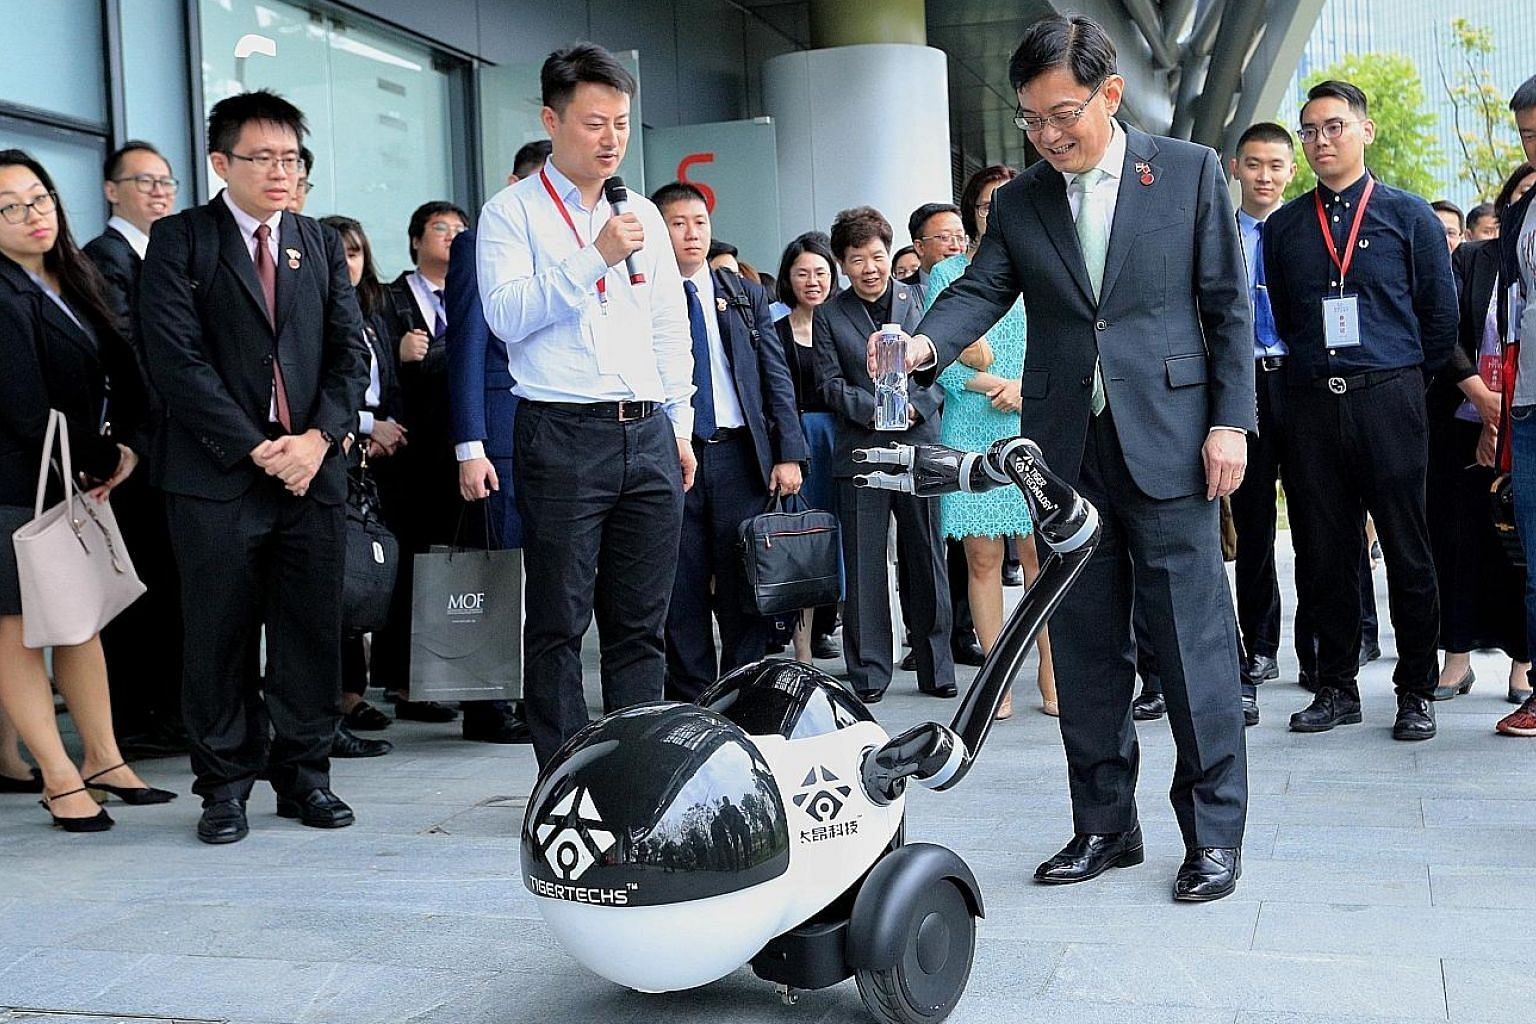 Deputy Prime Minister Heng Swee Keat interacting with a robot yesterday while on a tour of the Zhangjiang International Innovation Harbour, an artificial intelligence hub in Shanghai.